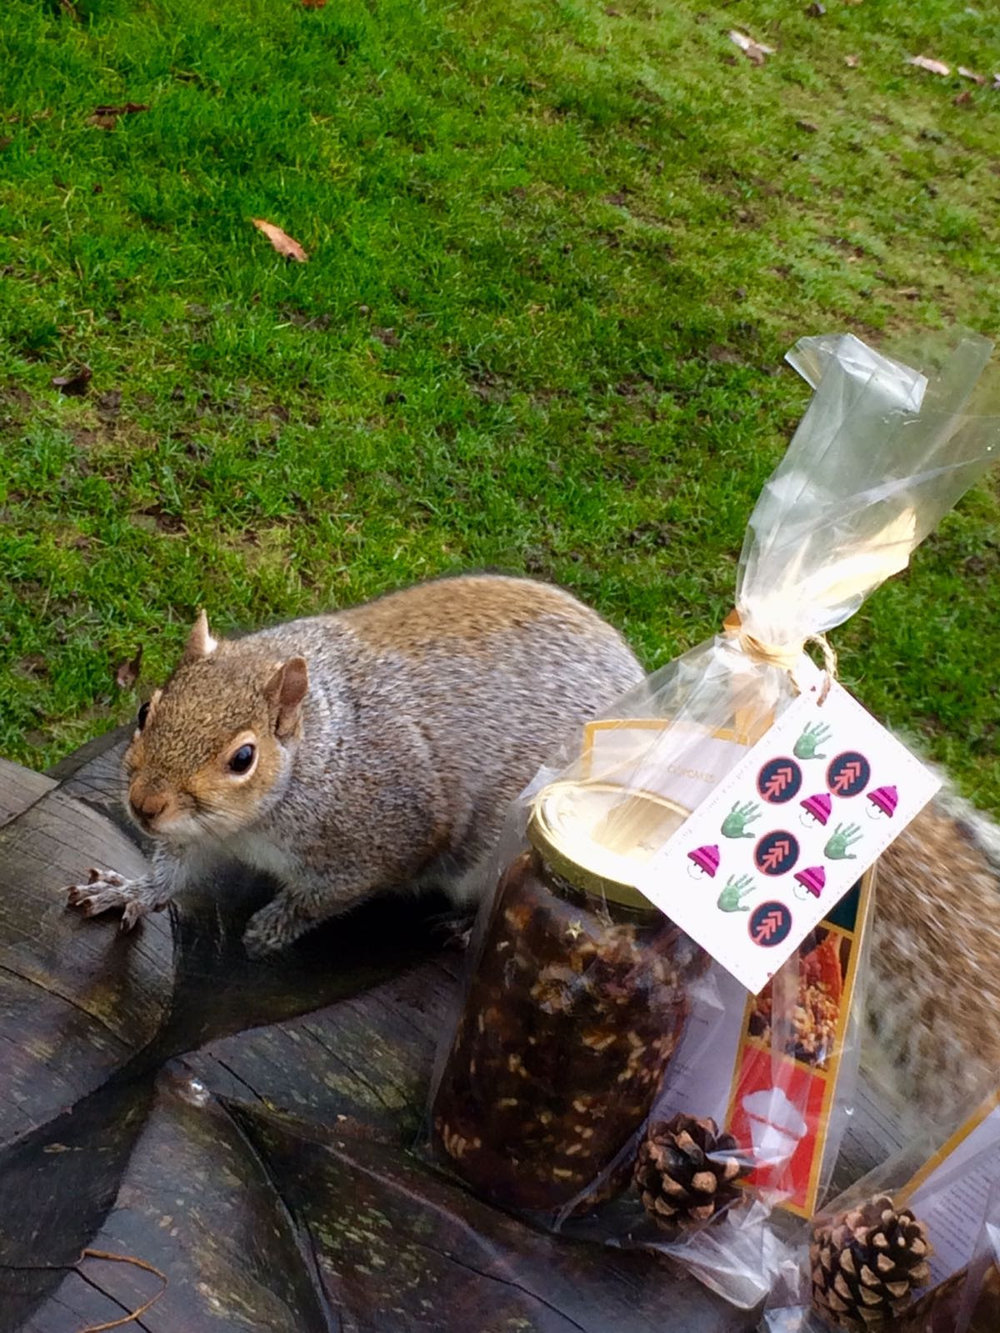 Cheeky squirrel admiring out stir up jars :-)